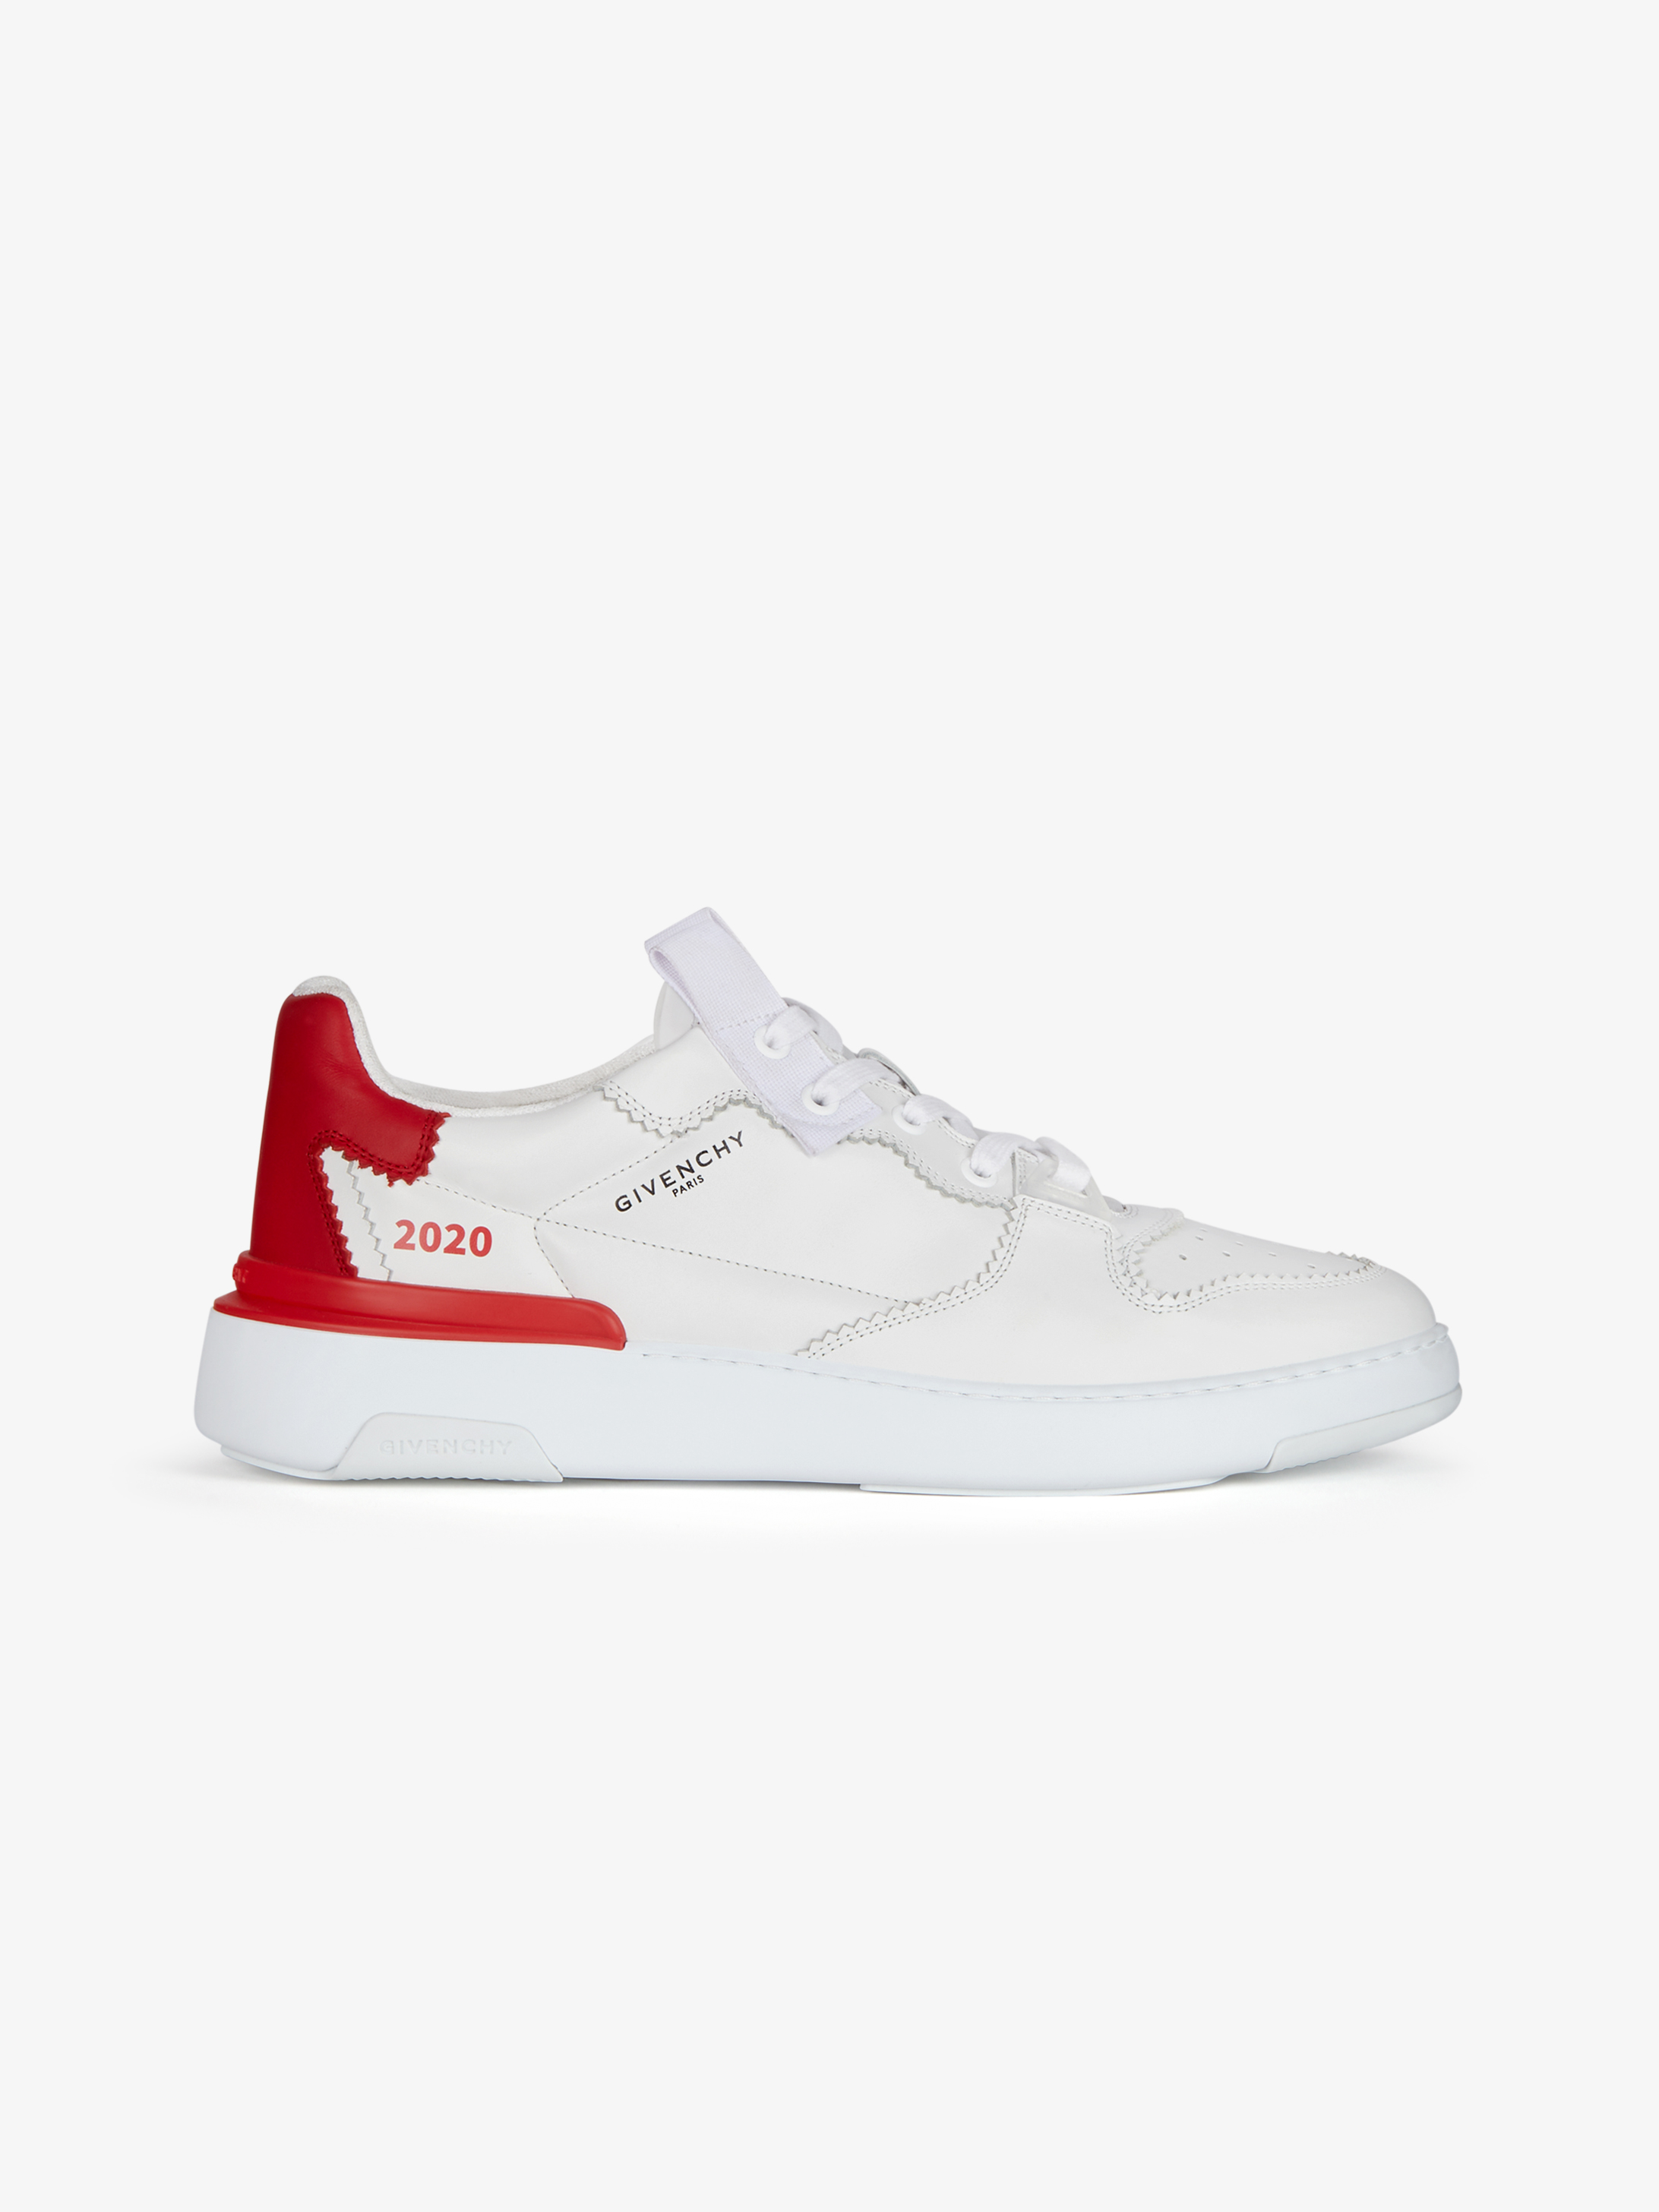 Wing 2020 low two tone sneakers